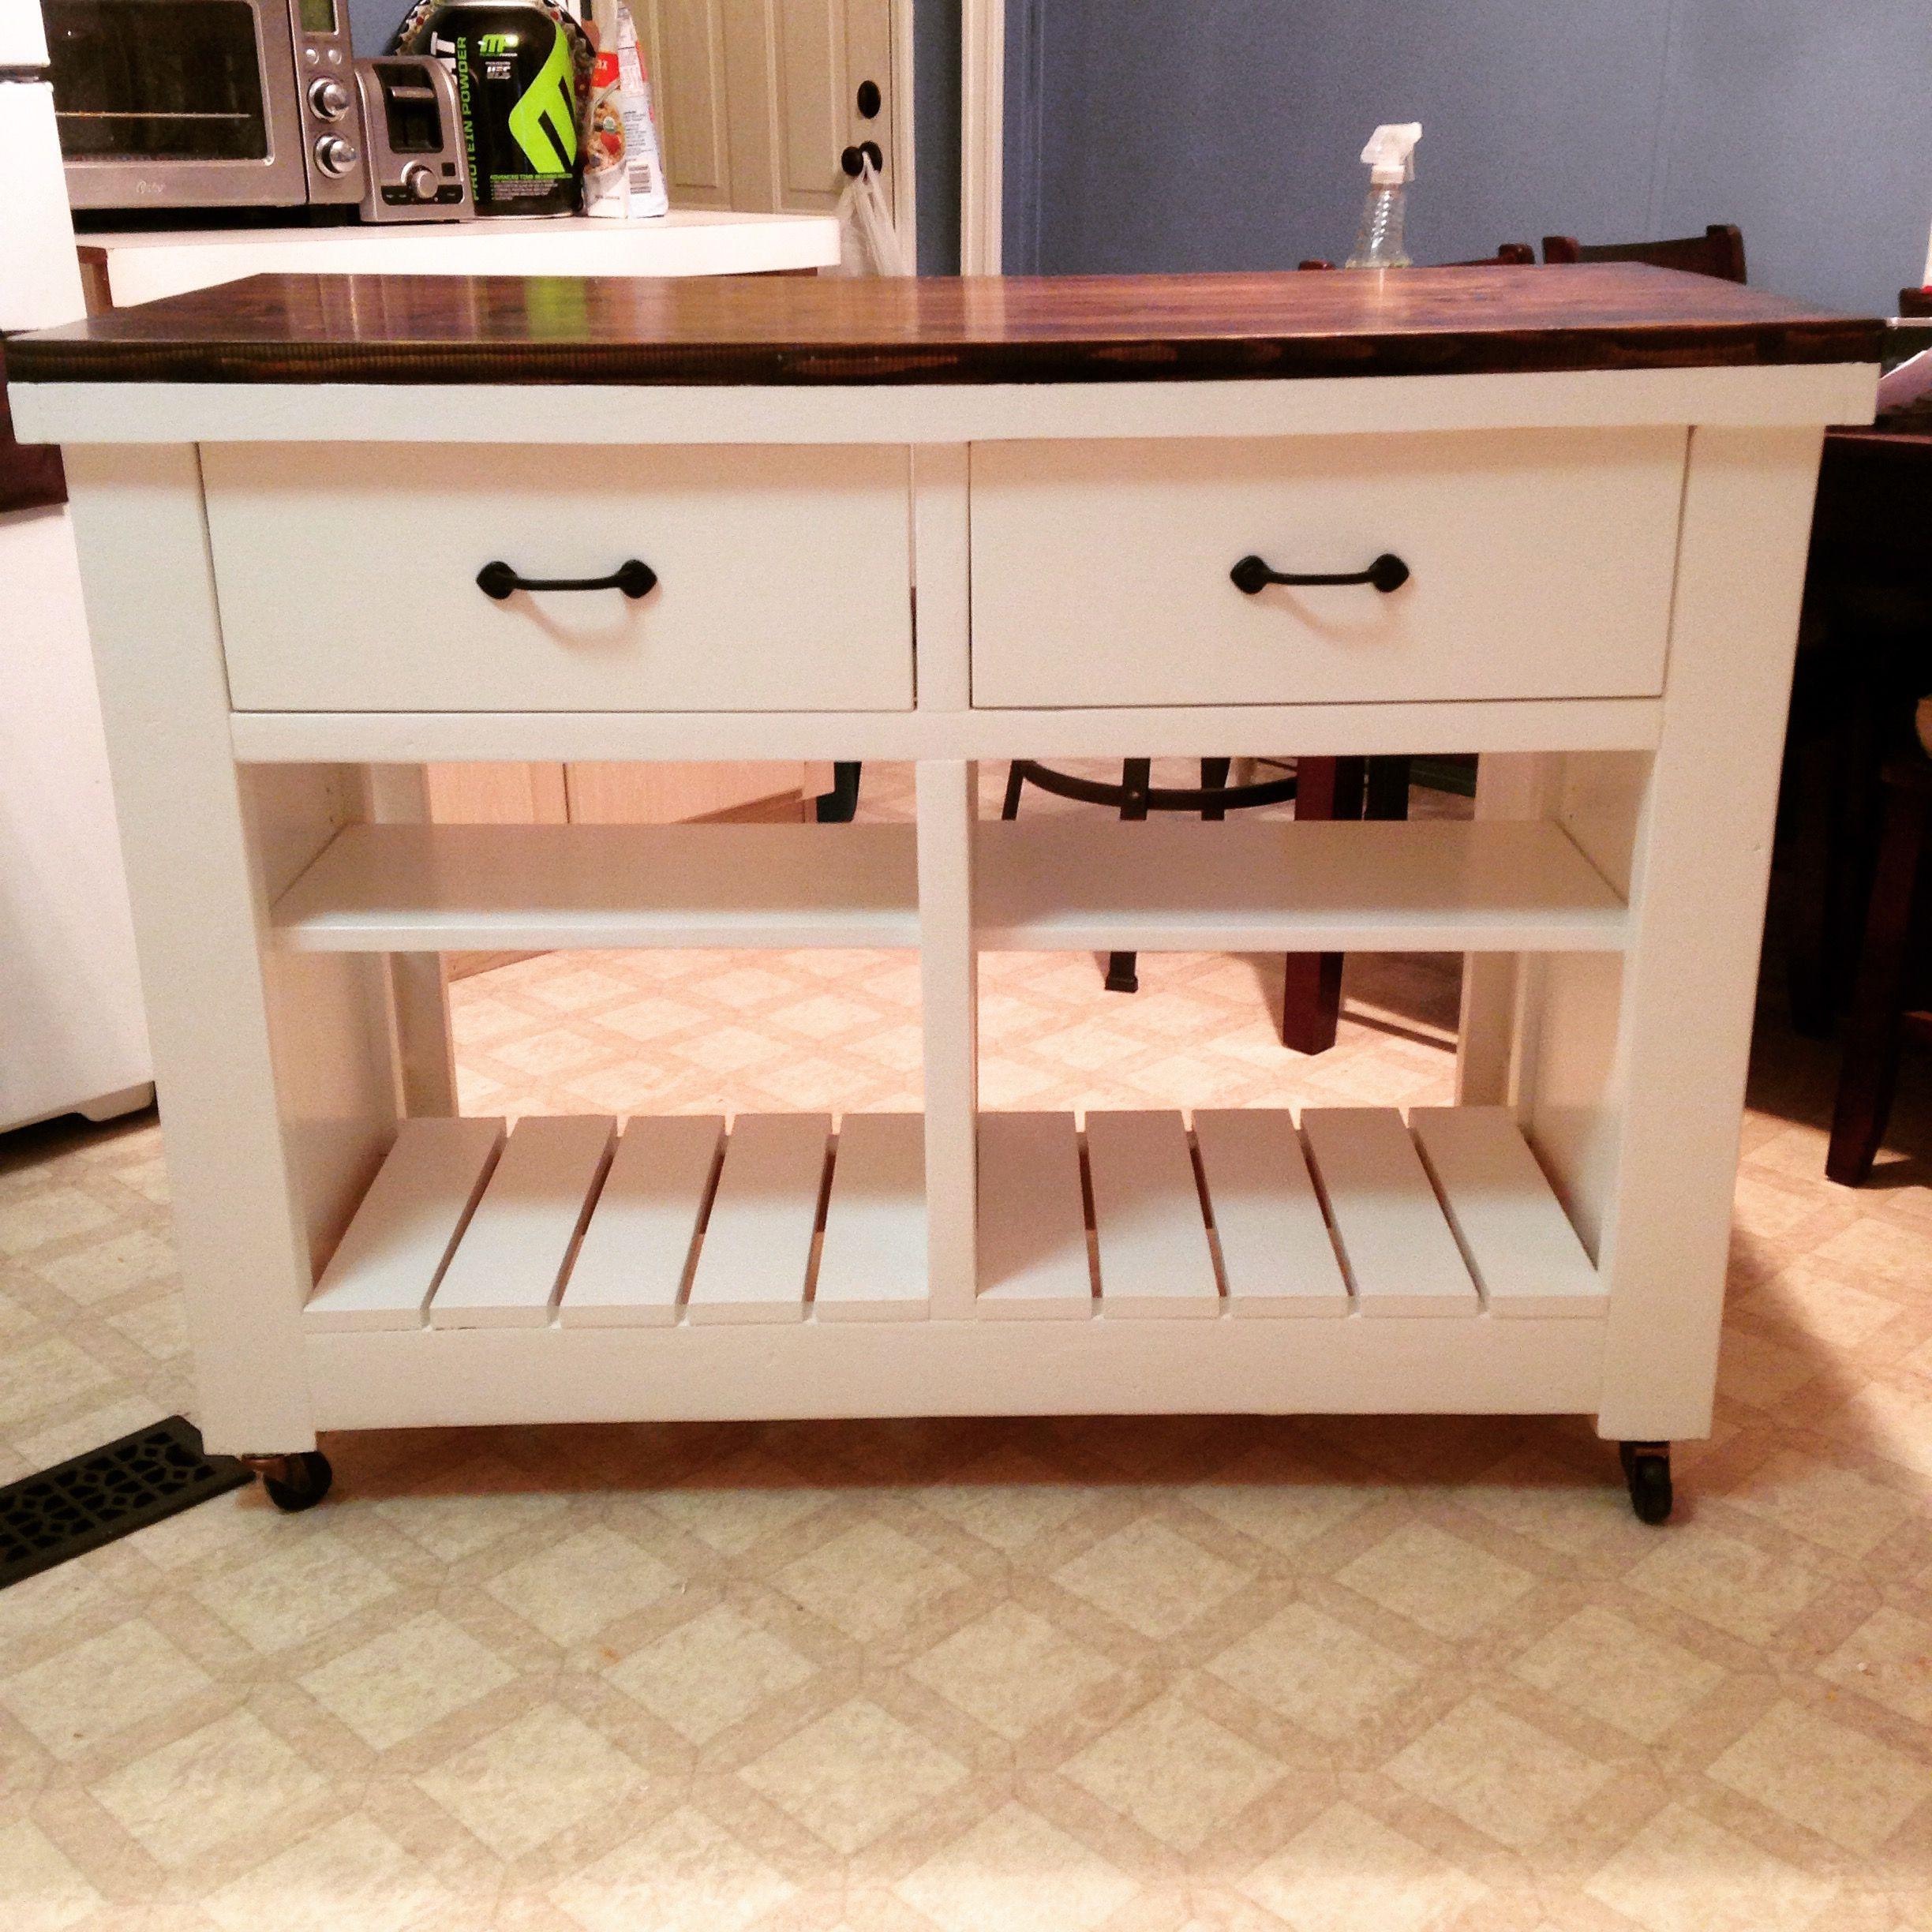 Building kitchen island  Rustic Kitchen Island DIY  Do It Yourself Home Projects from Ana